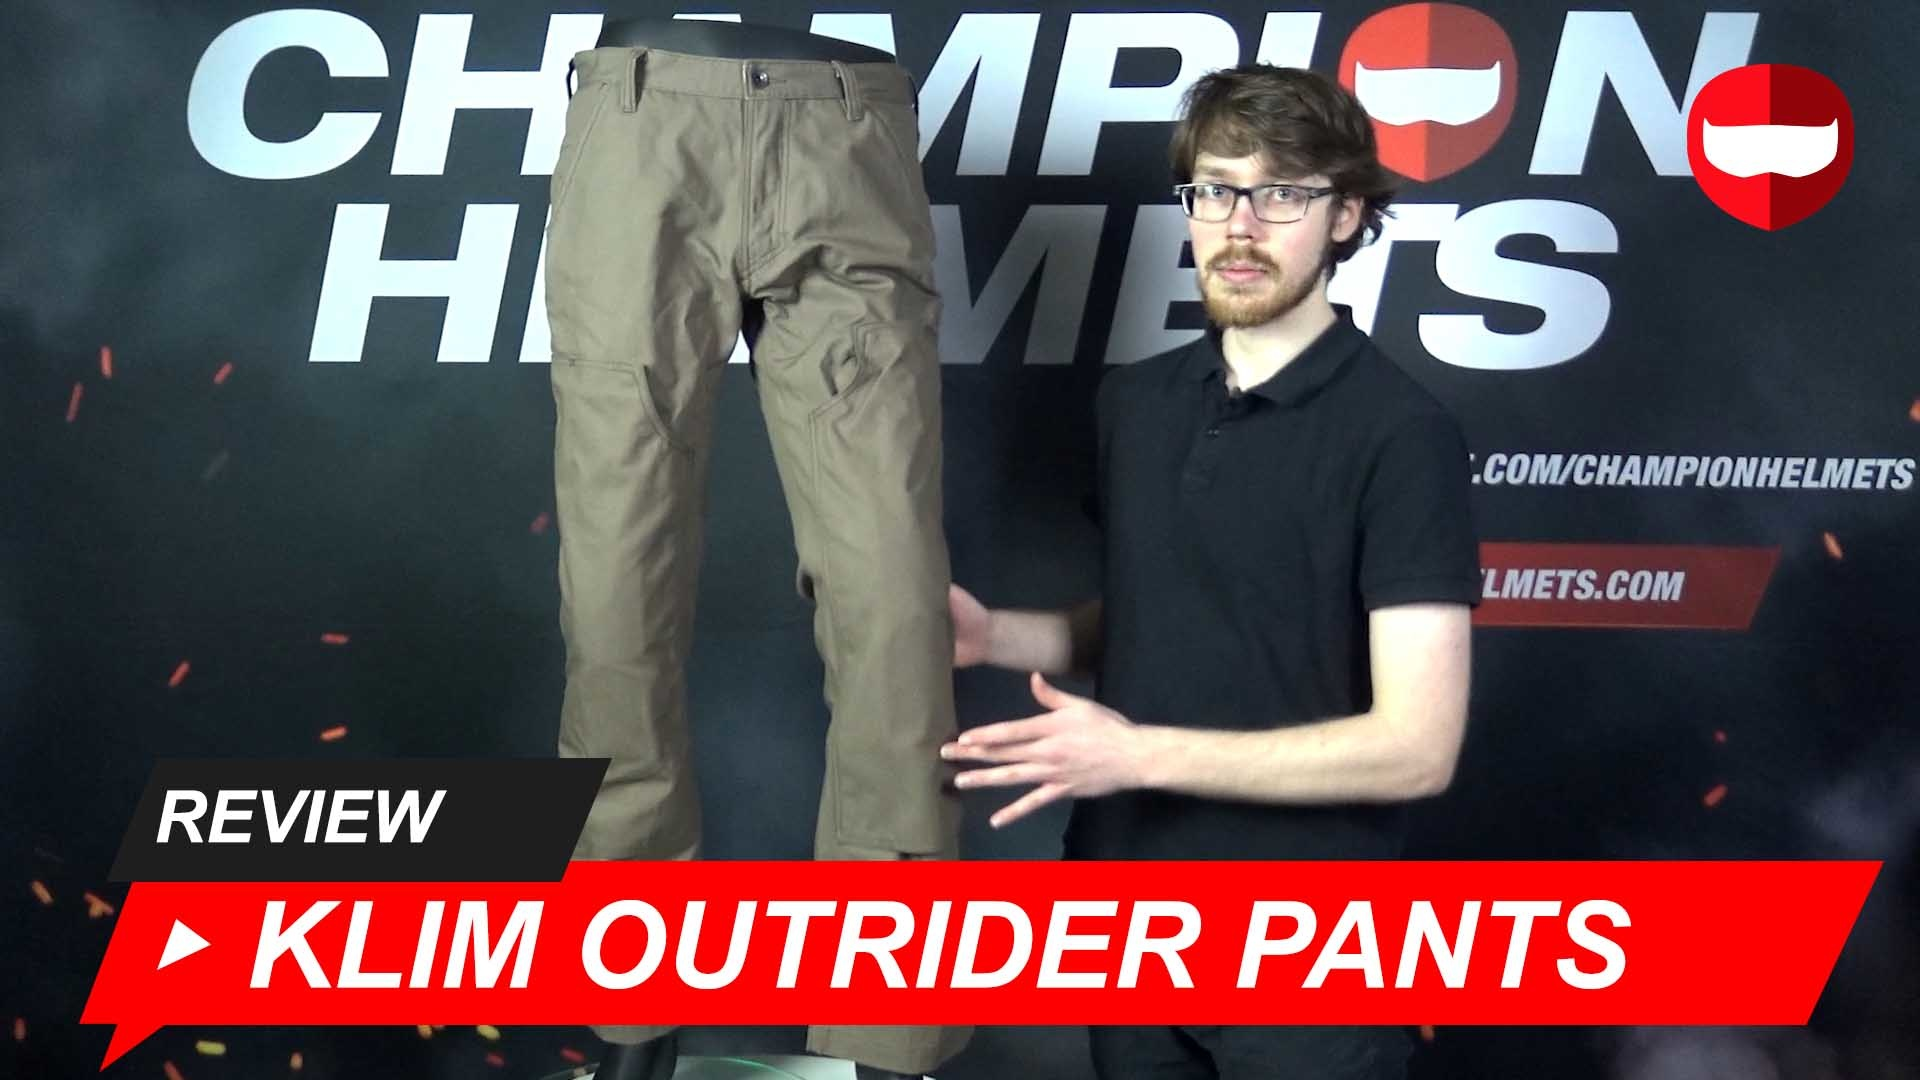 Klim Outrider Pants Review + Video